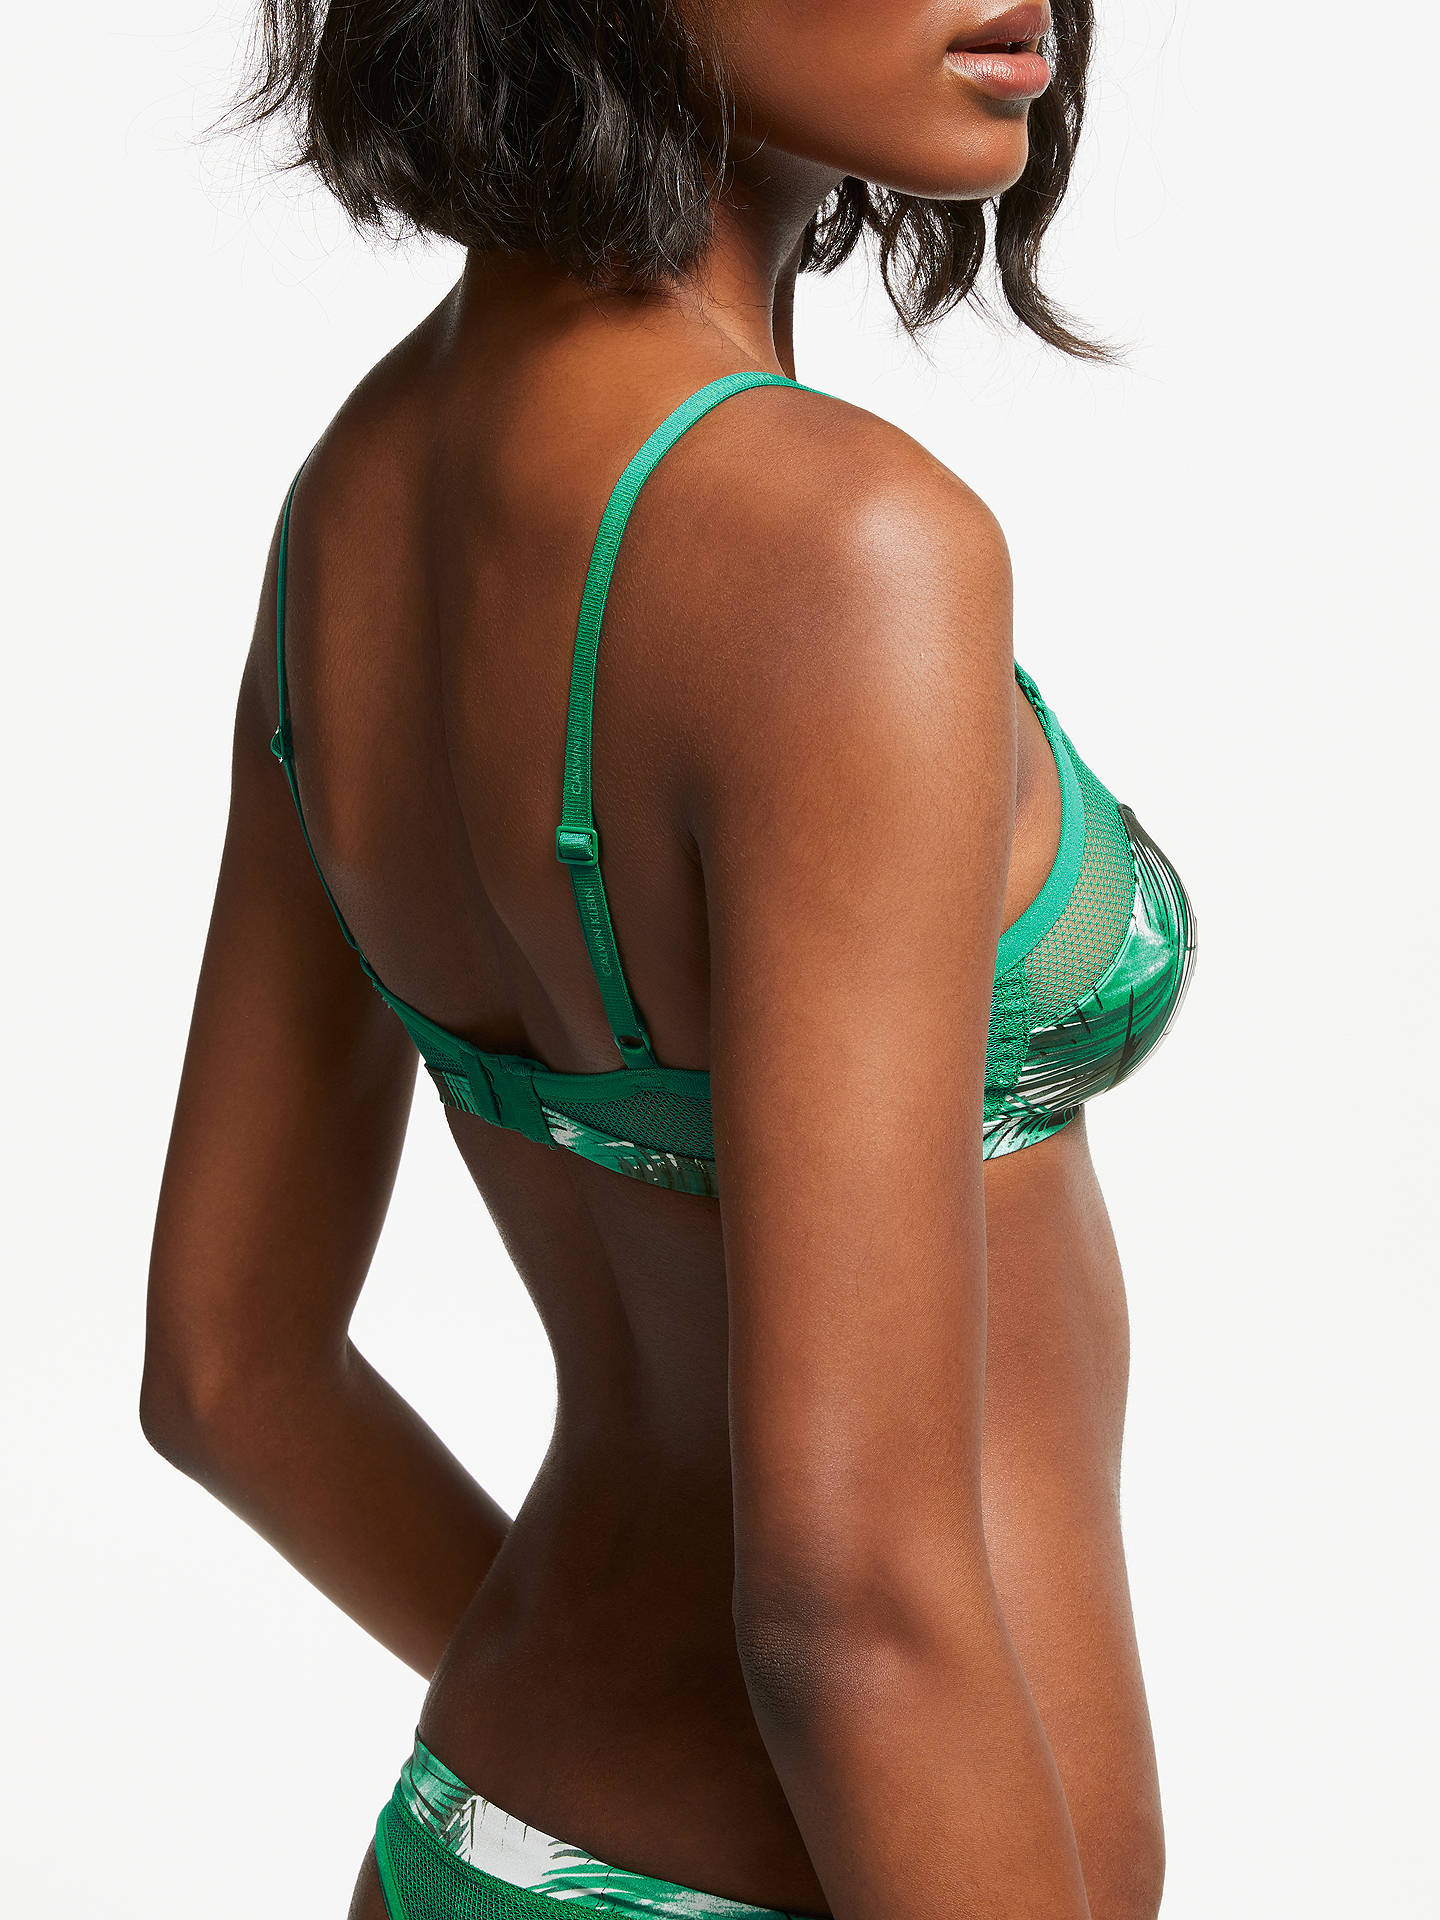 BuyCalvin Klein Underwear Youthful Palm Print Triangle Bra, Green, S Online at johnlewis.com